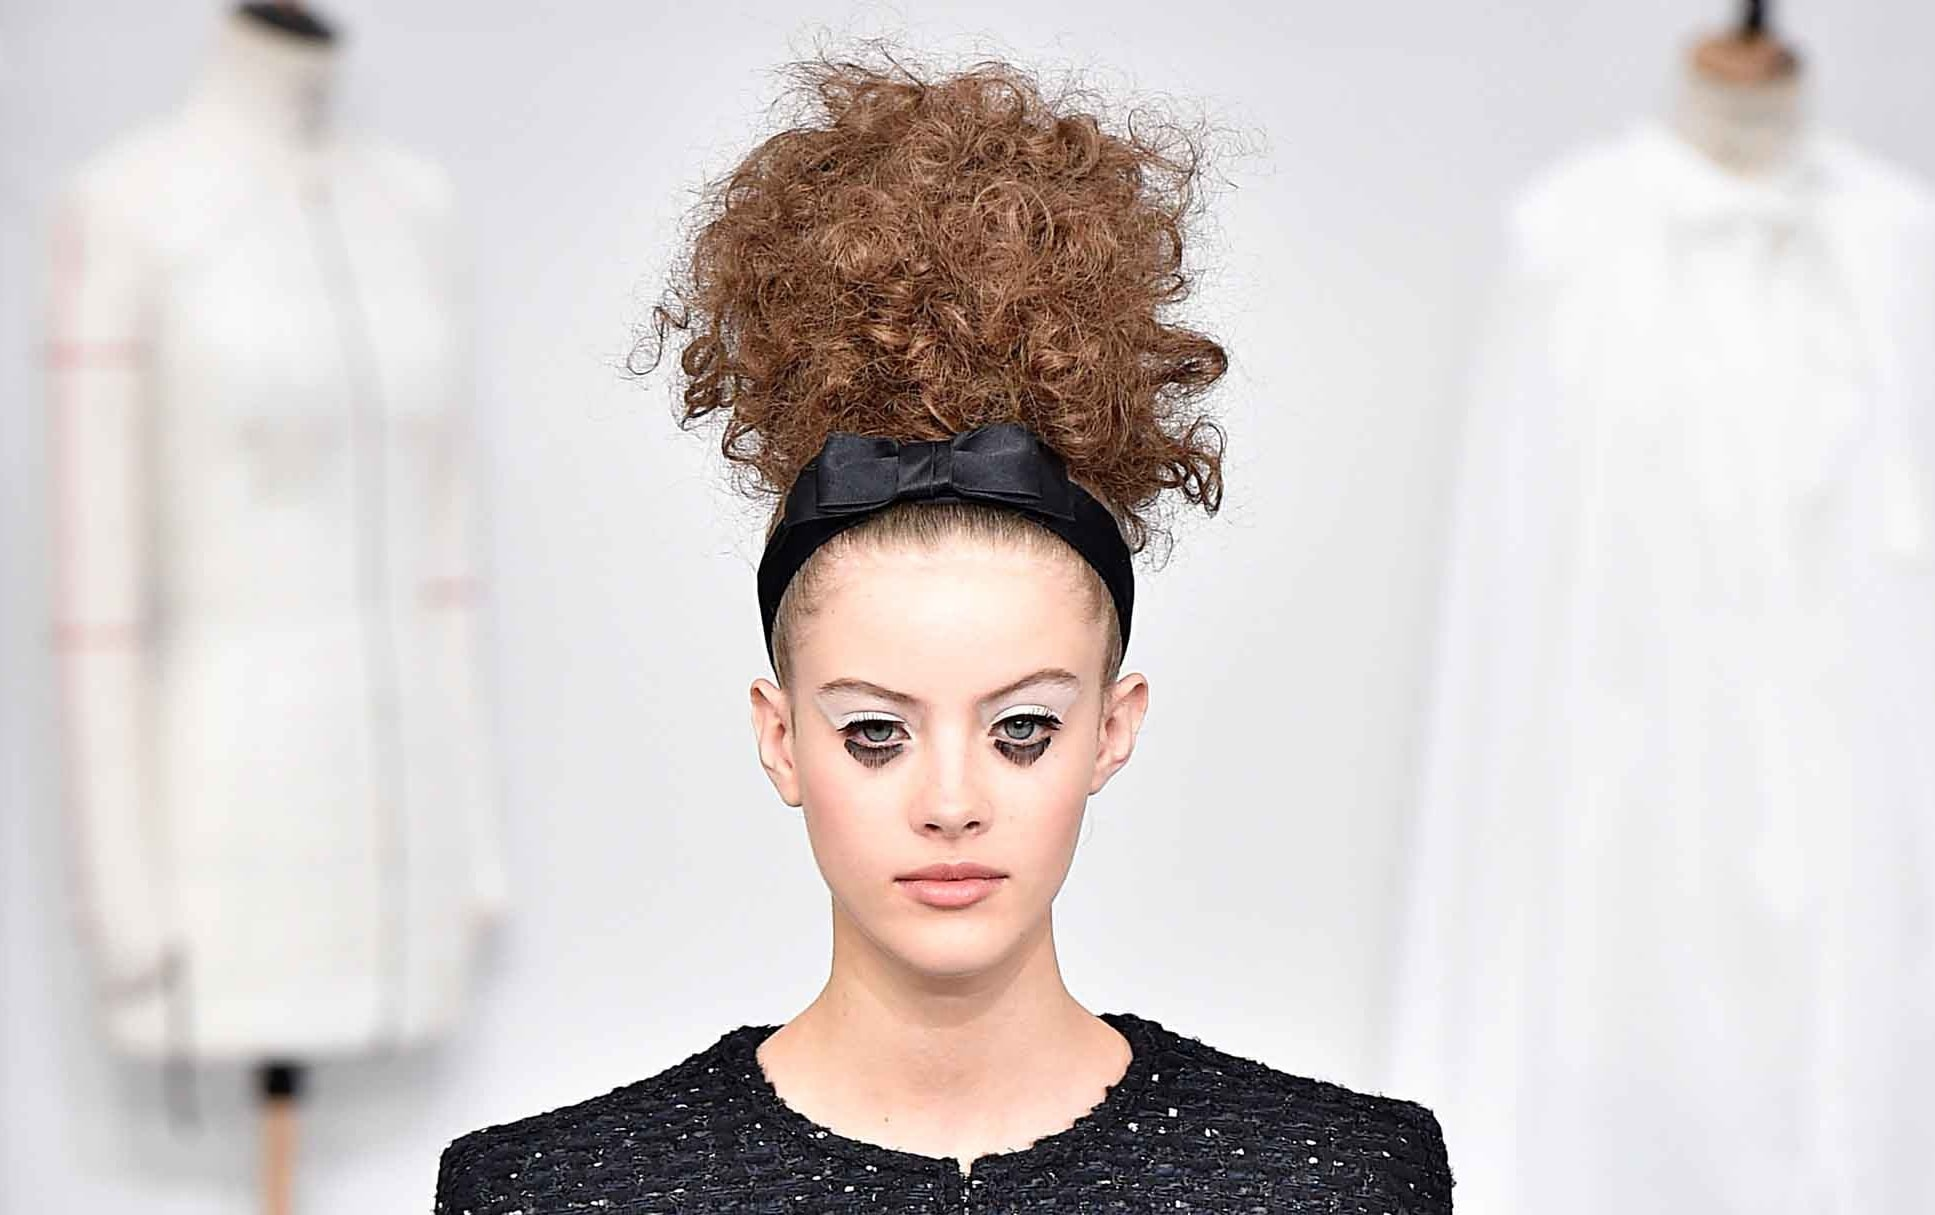 brunette chanel couture model wearing a black bow headband